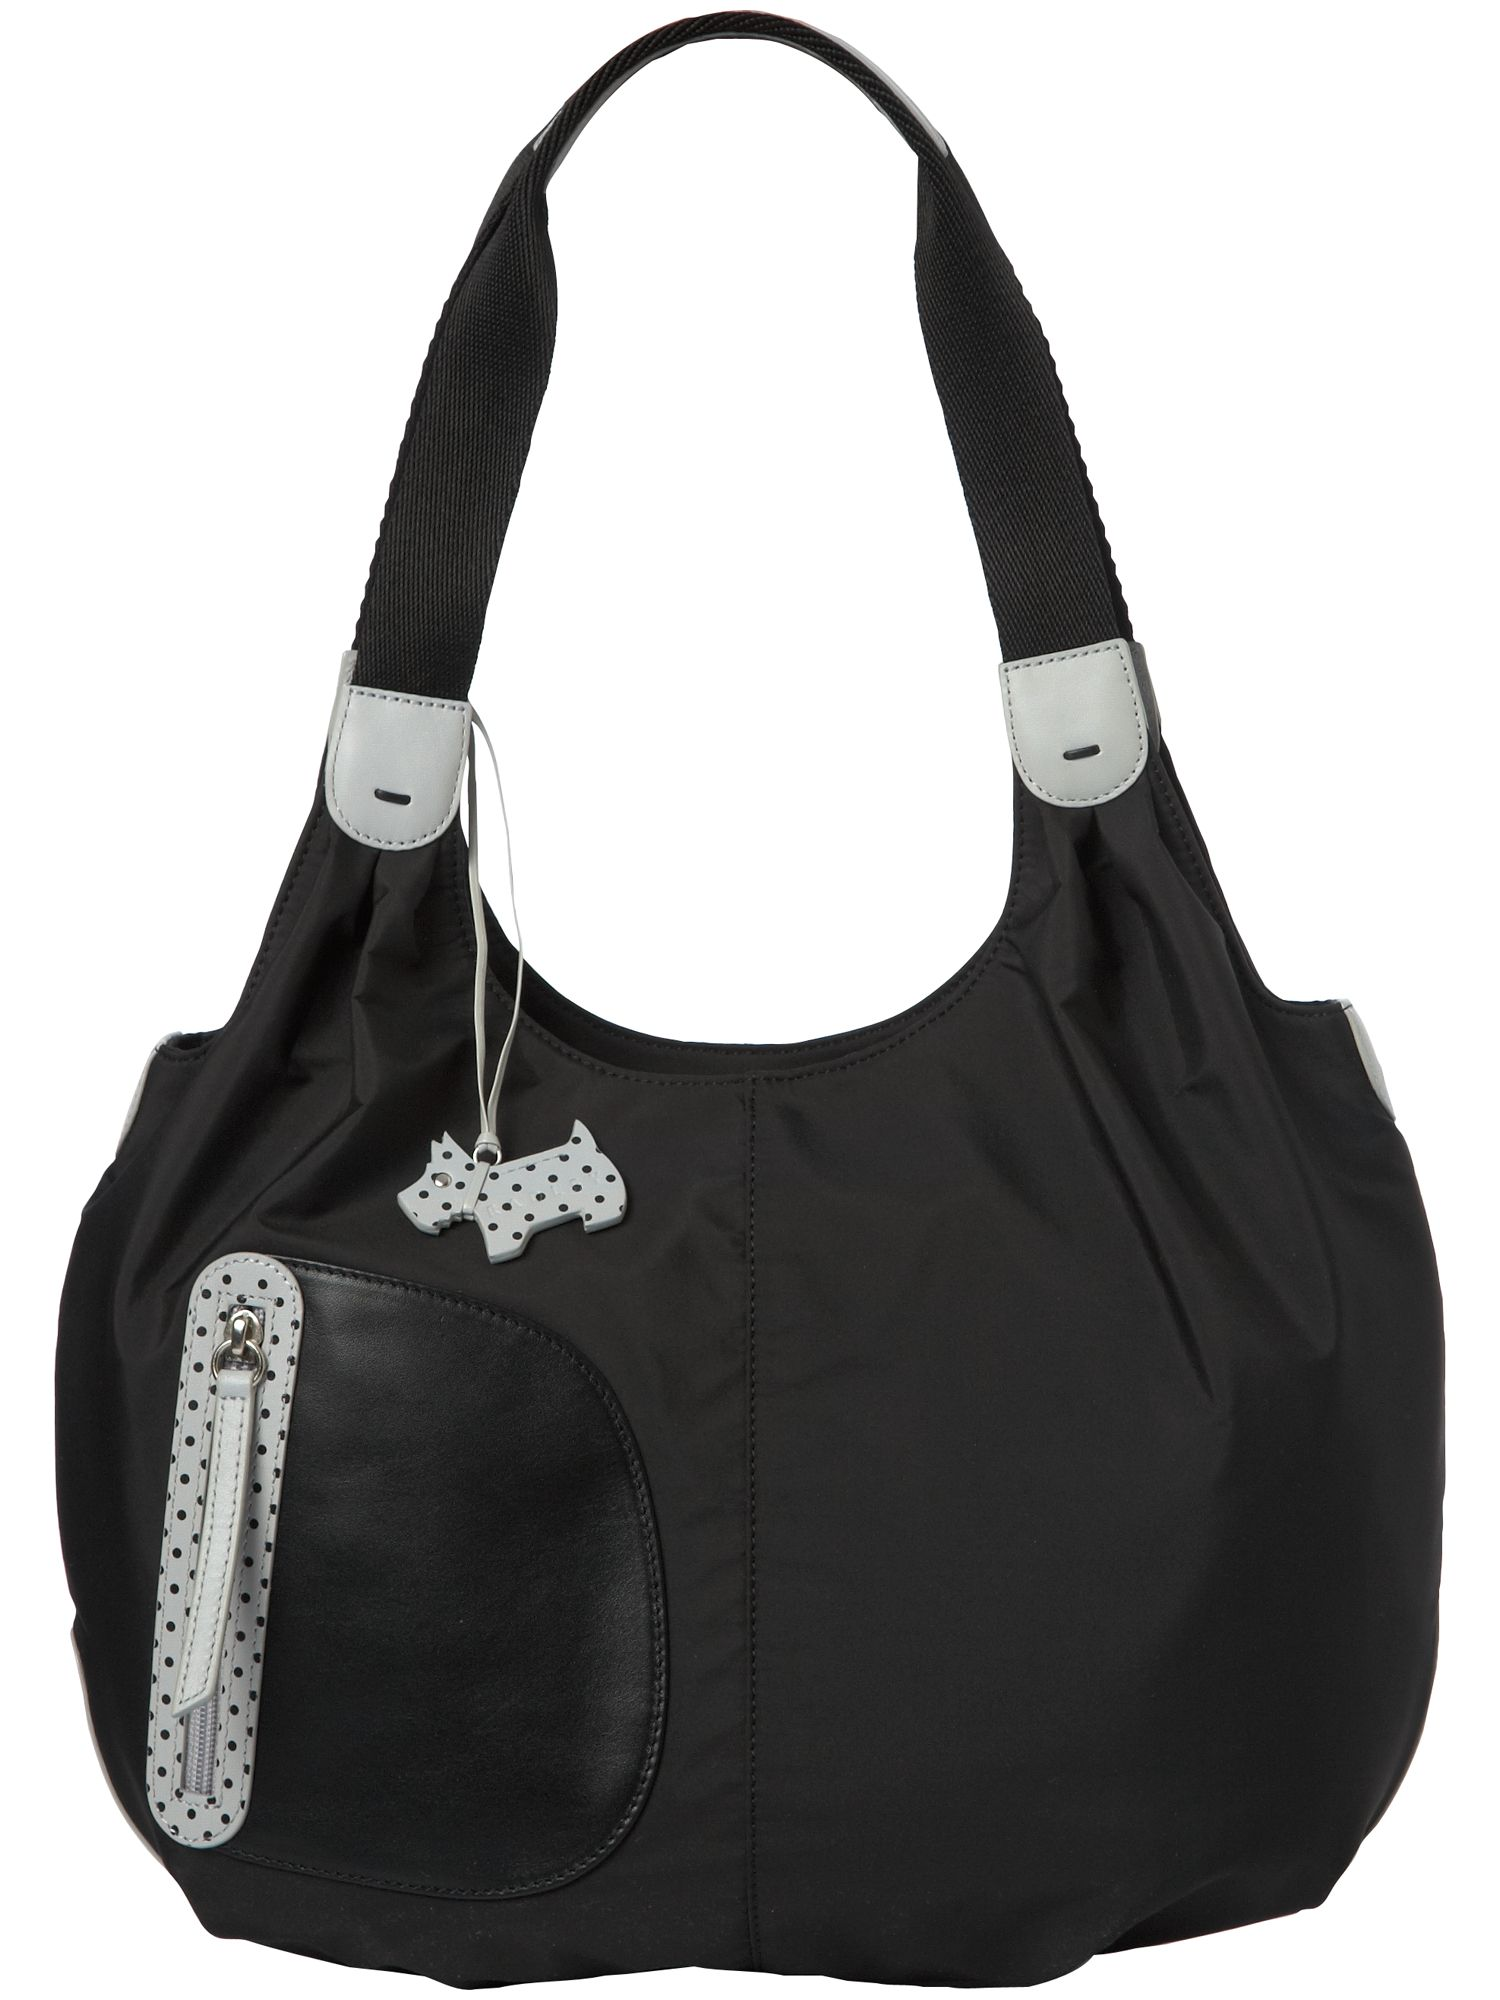 Pursuit nylon large tote bag